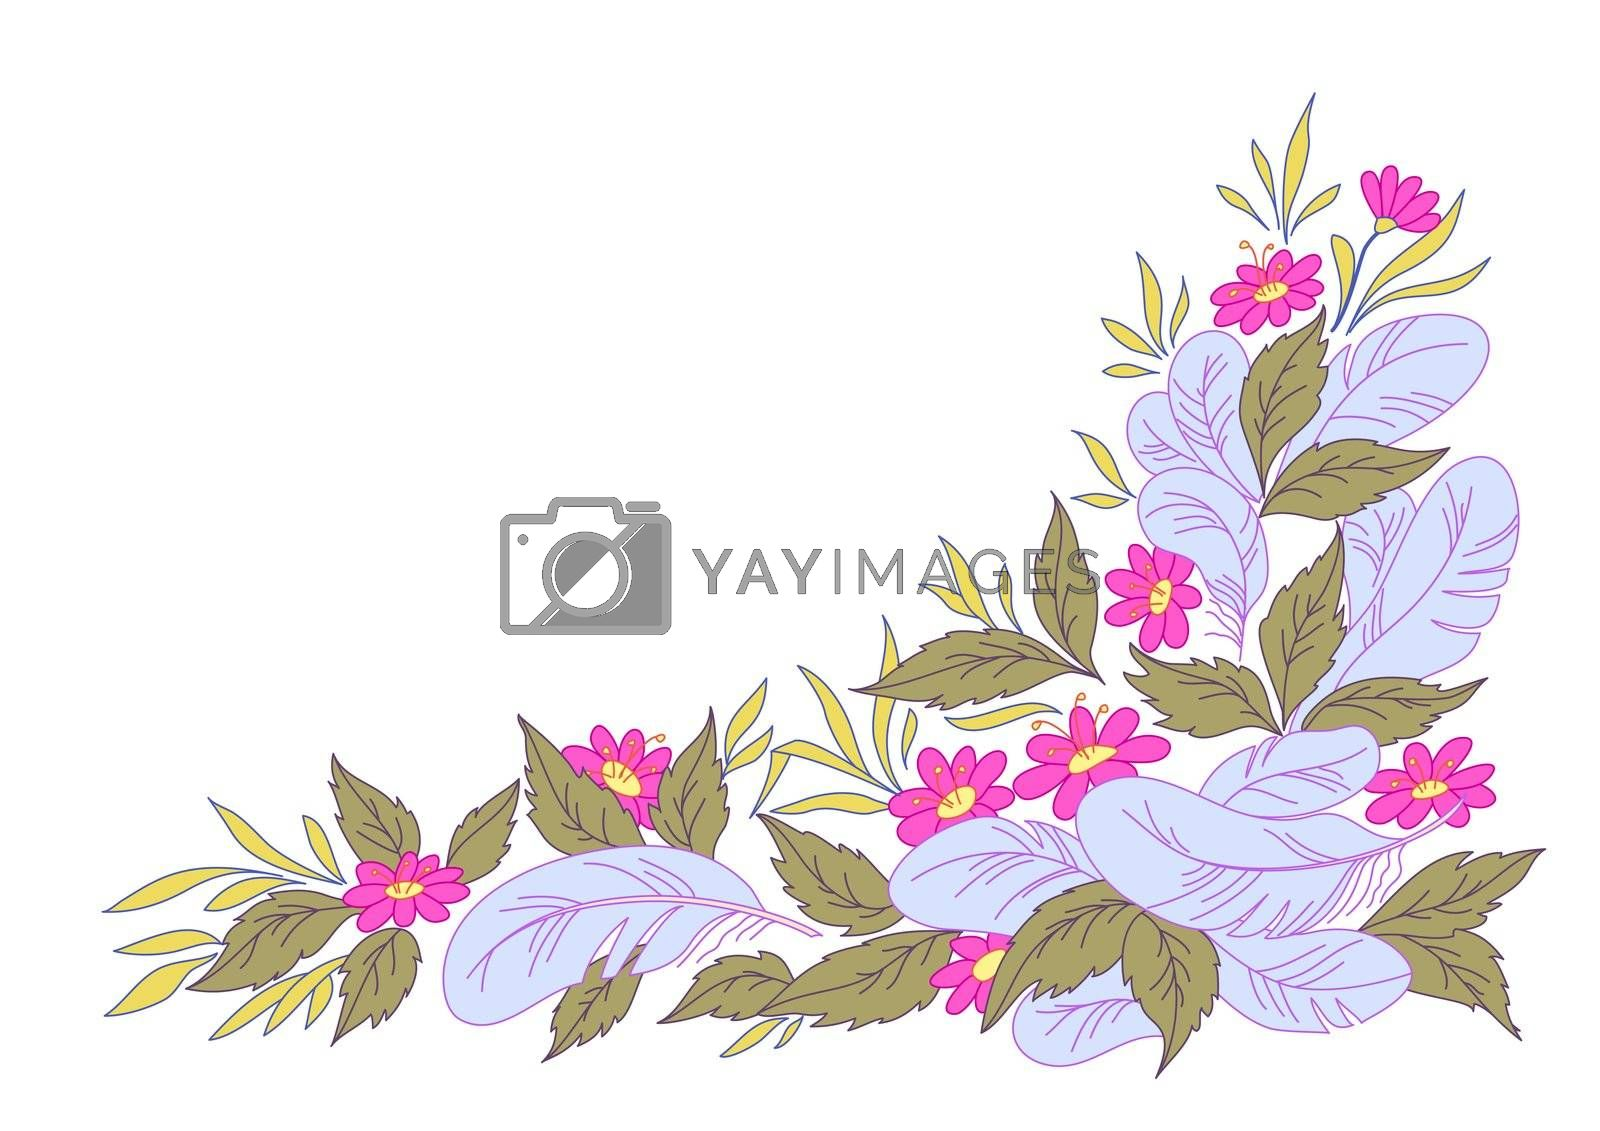 abstract summer background: leaves, flowers and feathers on the white